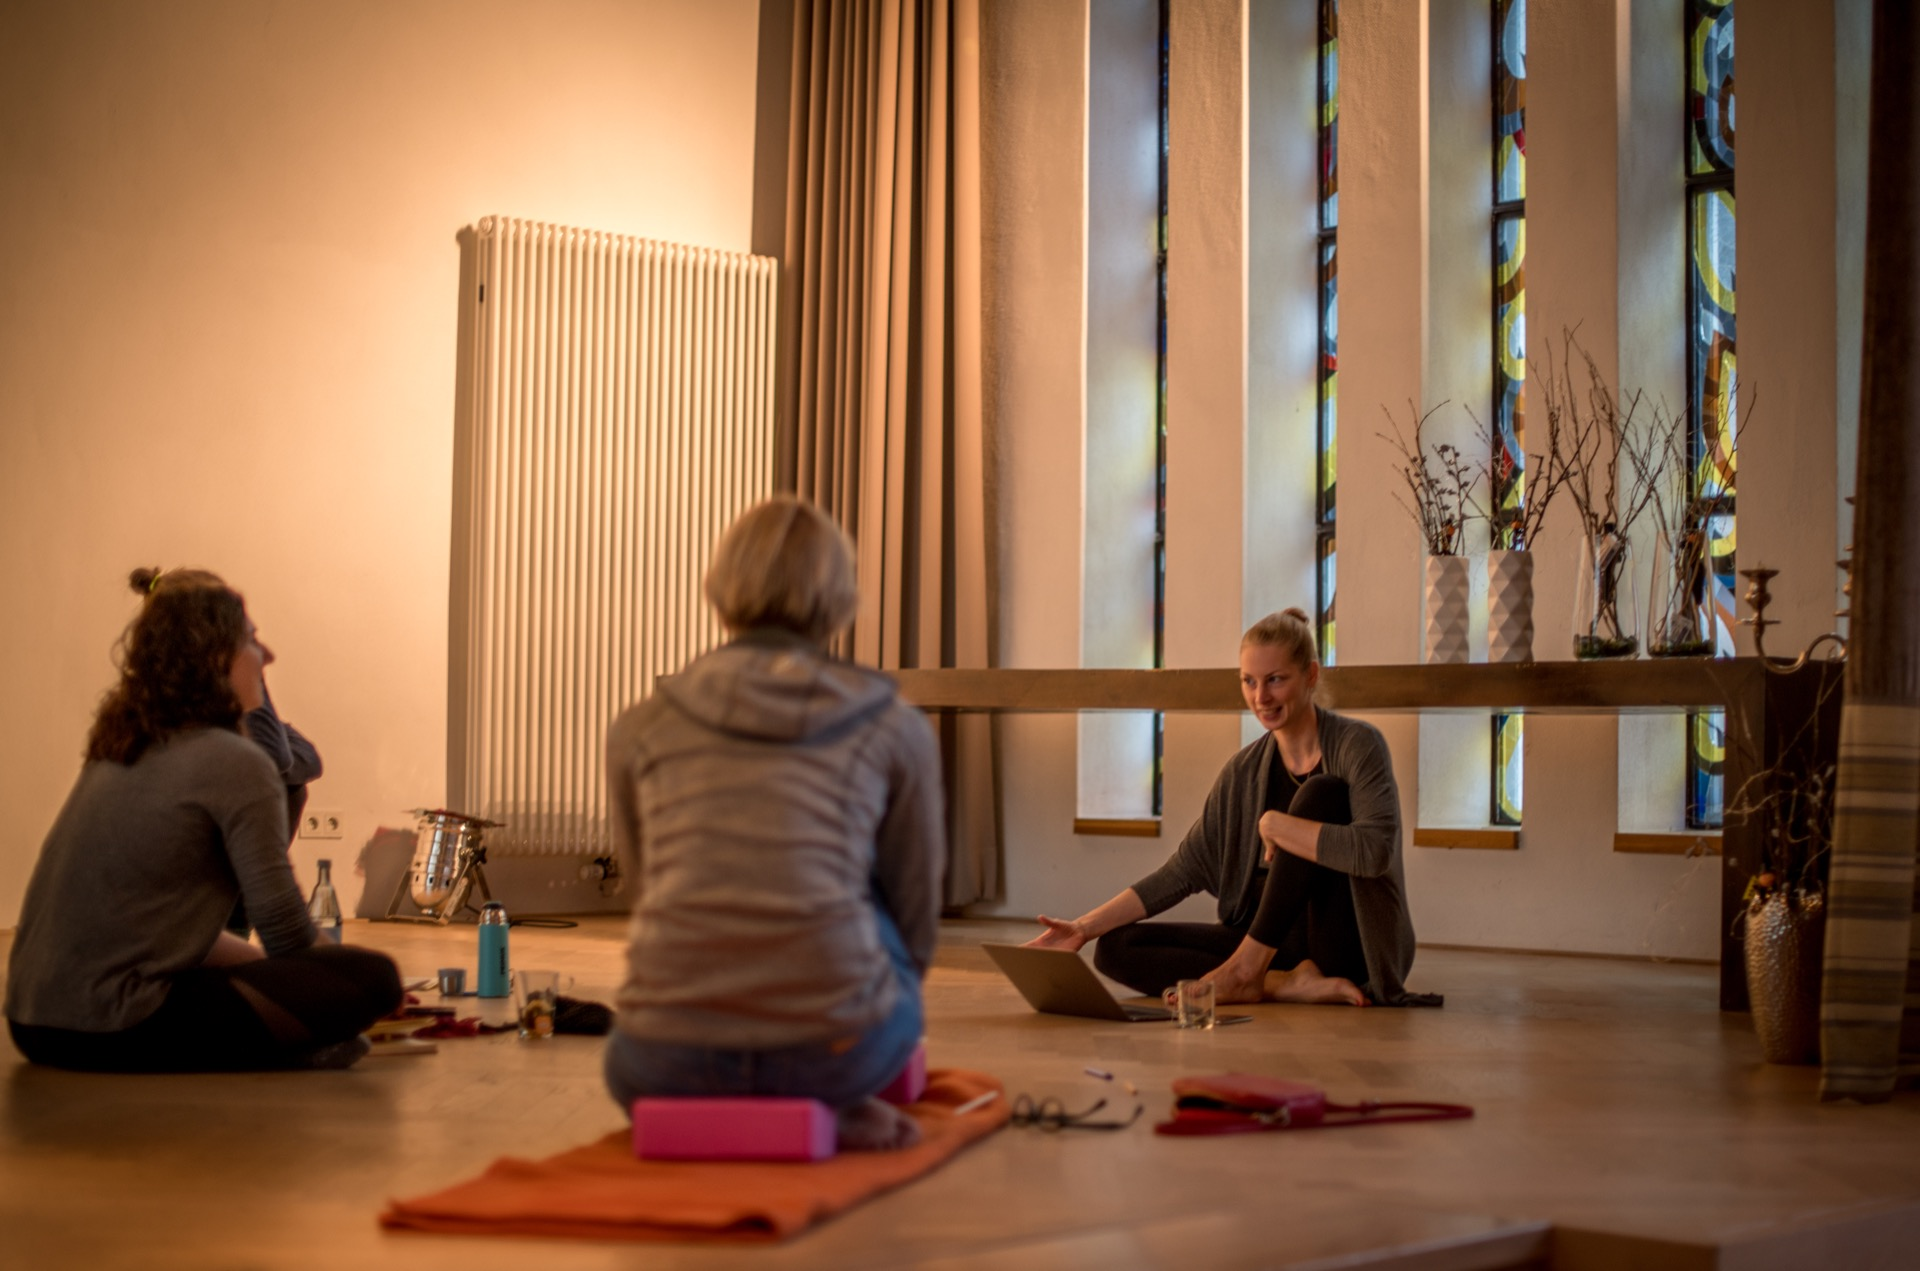 A-New-Beginning-Hie-Kim-Yoga-Retreat-Alina-Matis-Photography-061 - Hie Kim Yoga - Yoga Retreat - Yoga Workshops und Reisen